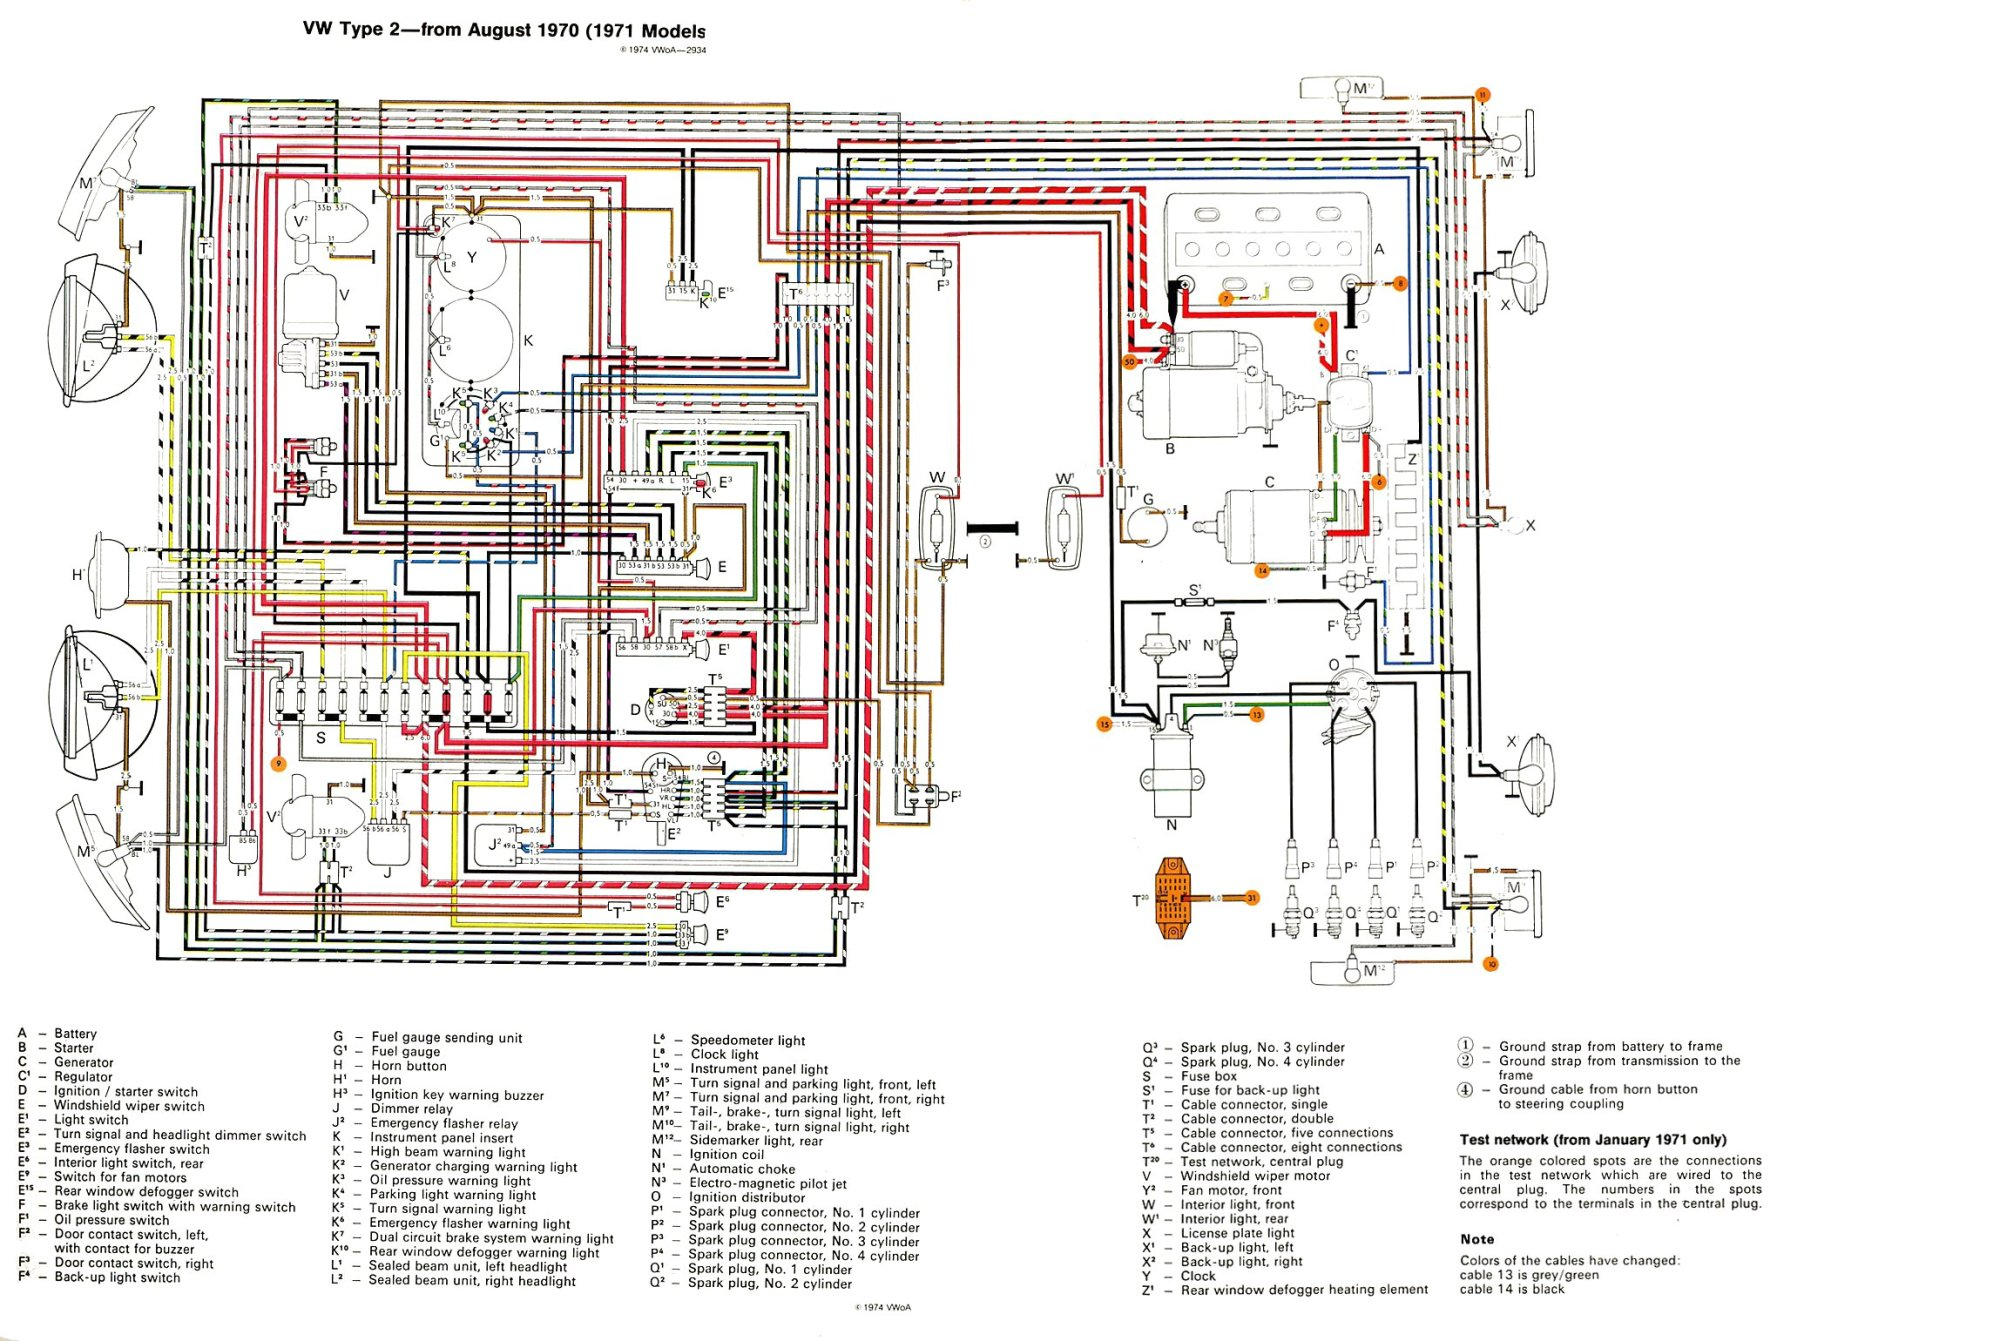 hight resolution of thesamba com type 2 wiring diagrams 1970 vw beetle wiring schematic vw buggy wiring diagram